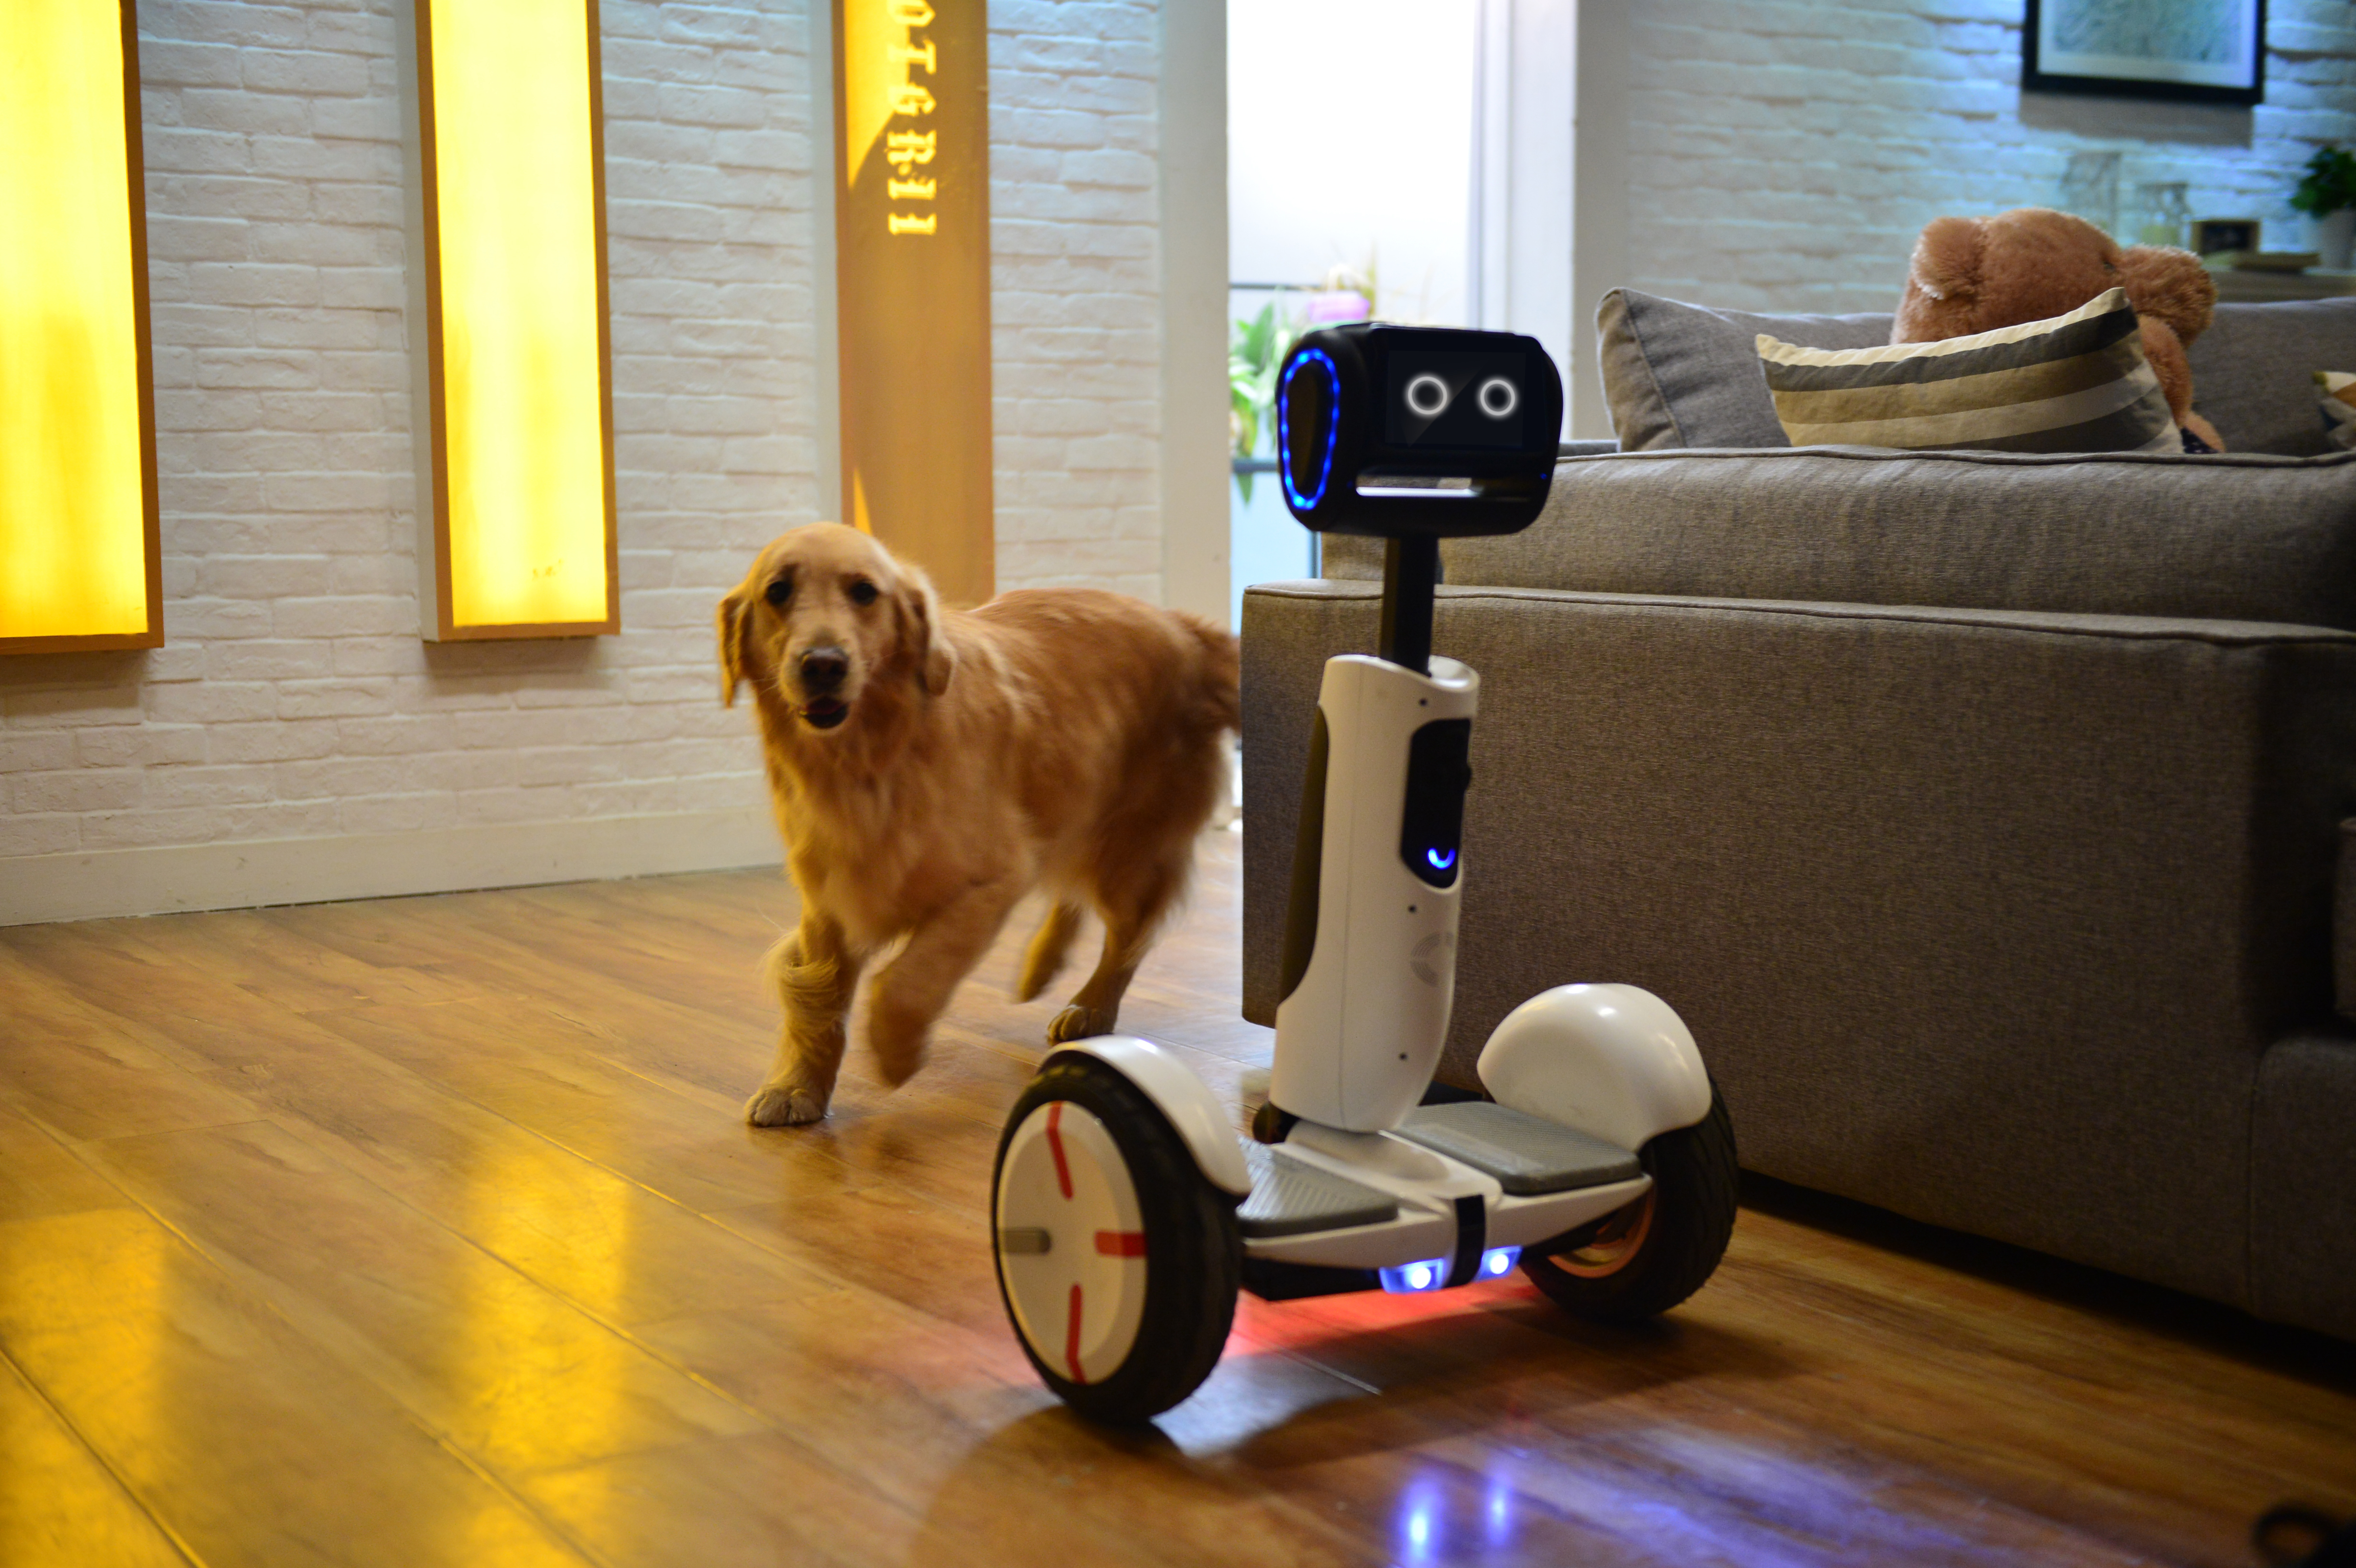 Segway says the company's new home robot, built with Intel and Ninebot will be ready for purchase in the second half of 2016.